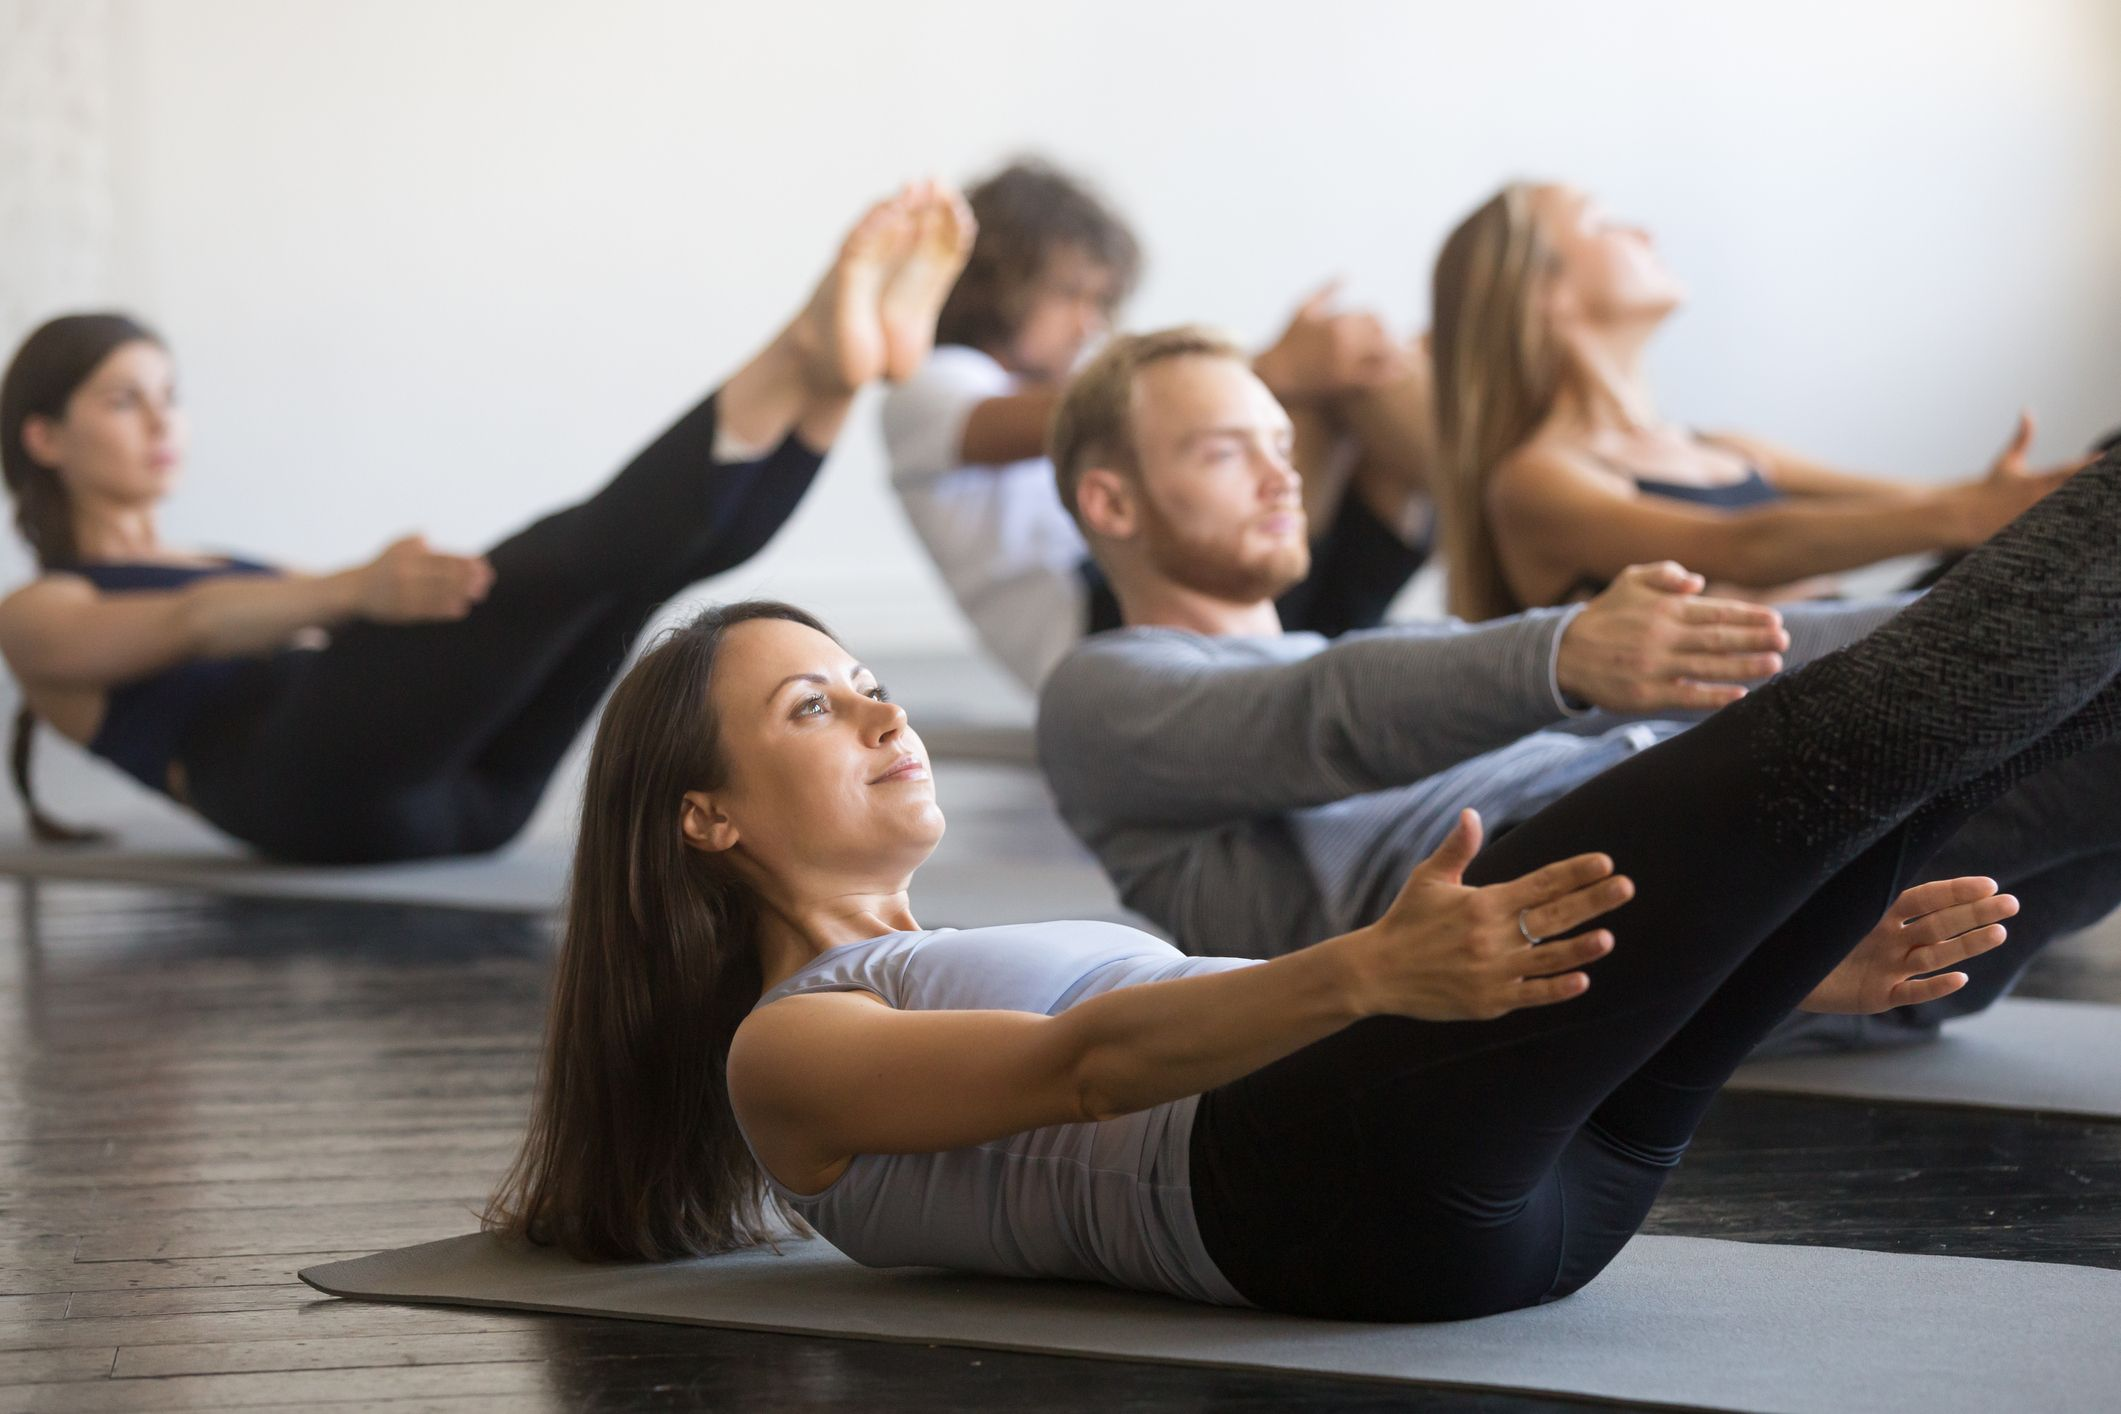 Can You Lose Weight Doing Yoga Experts Weigh In